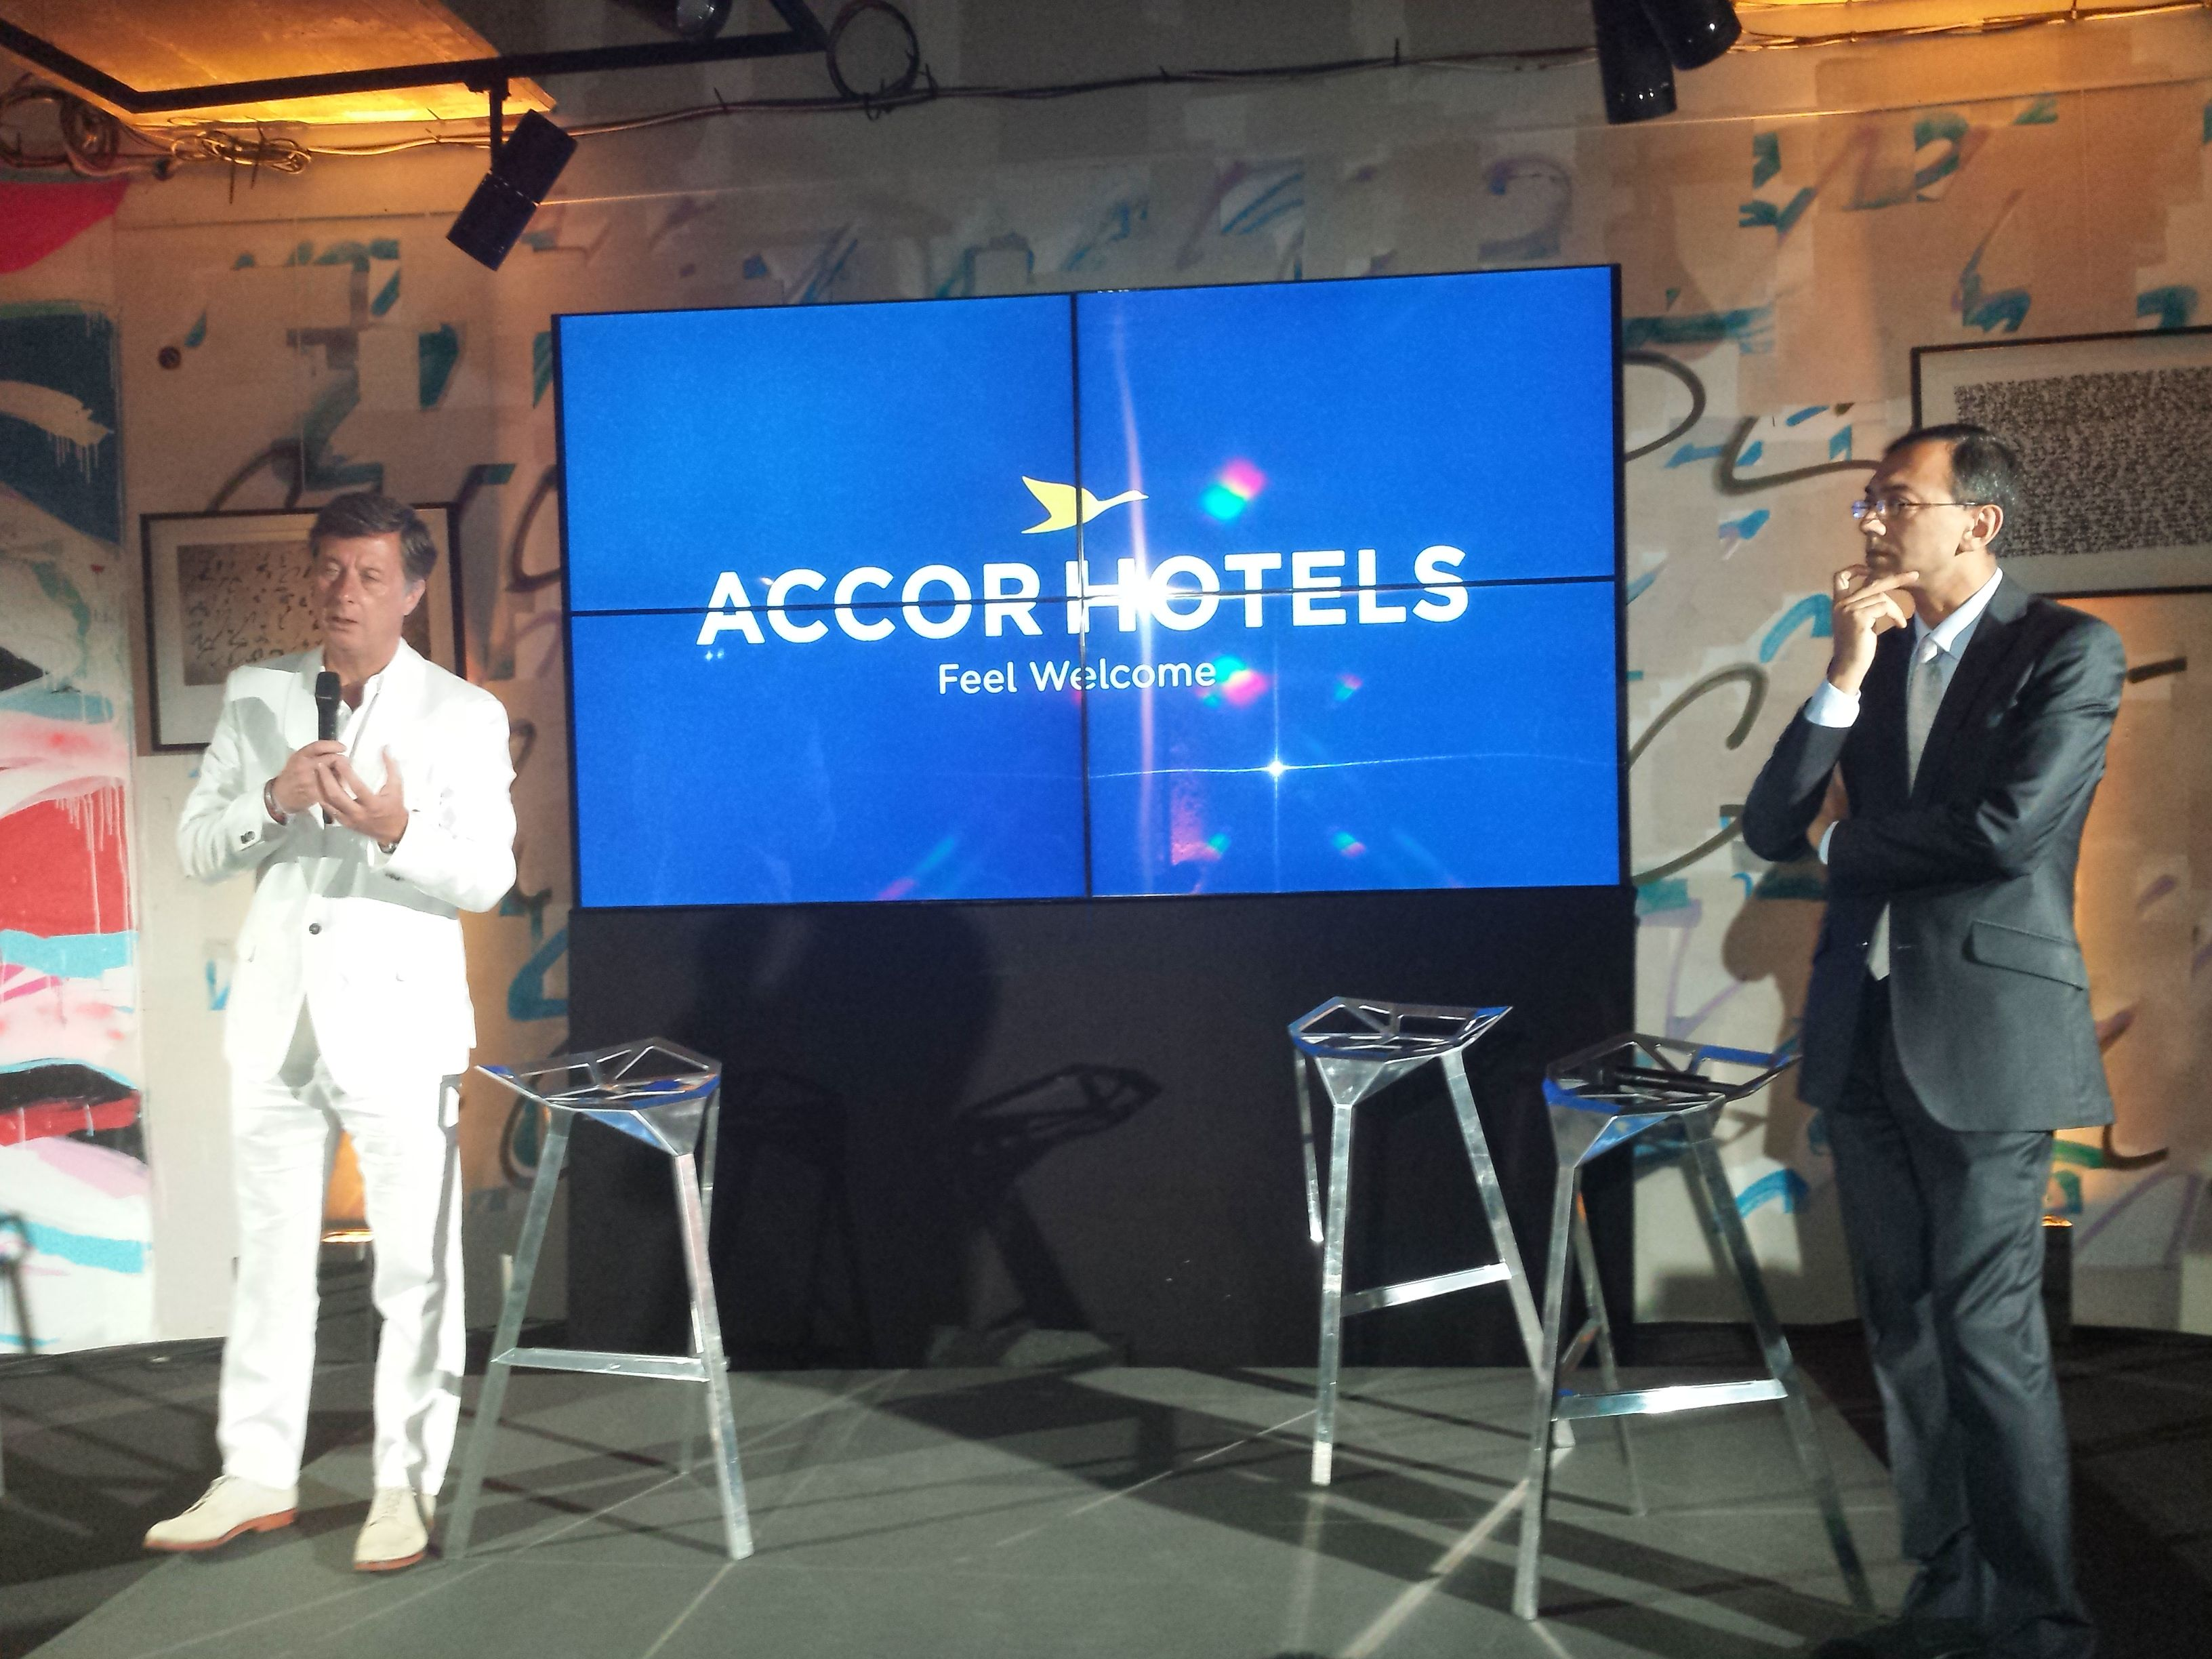 accor-devient-accorhotels